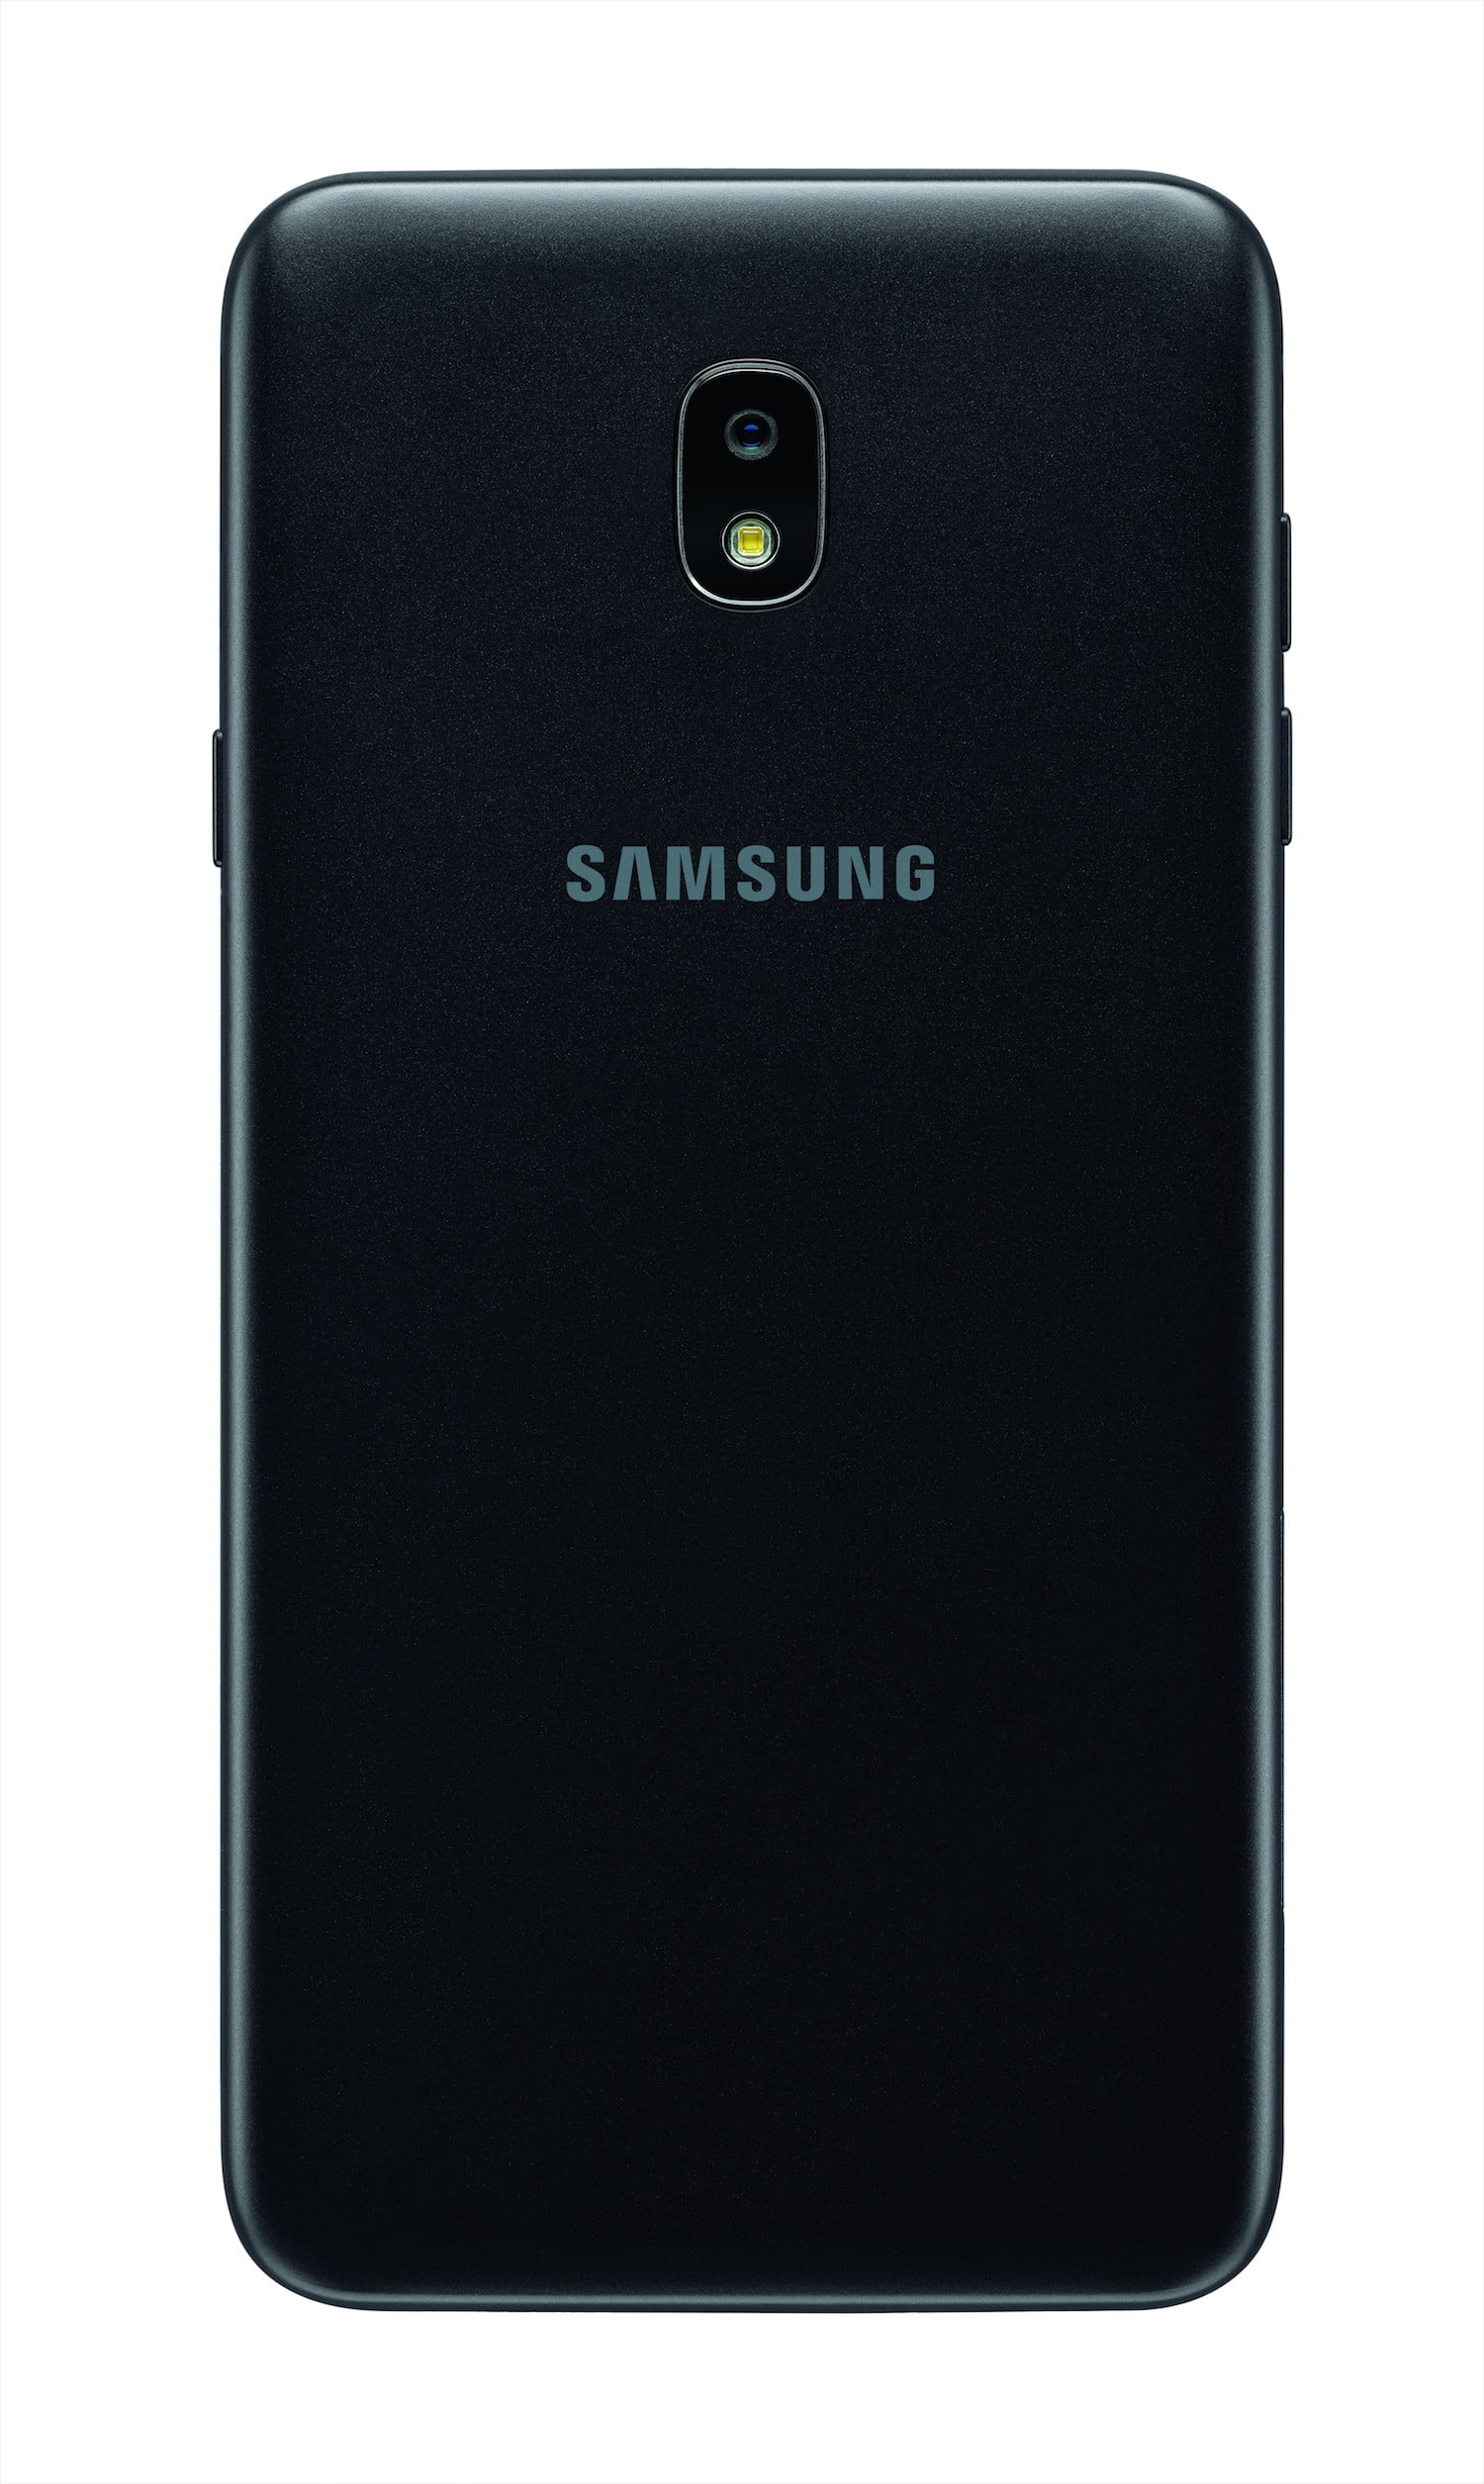 new concept 8090e 66e09 Samsung Galaxy J7, Galaxy J3: Everything You Need to Know | Digital ...